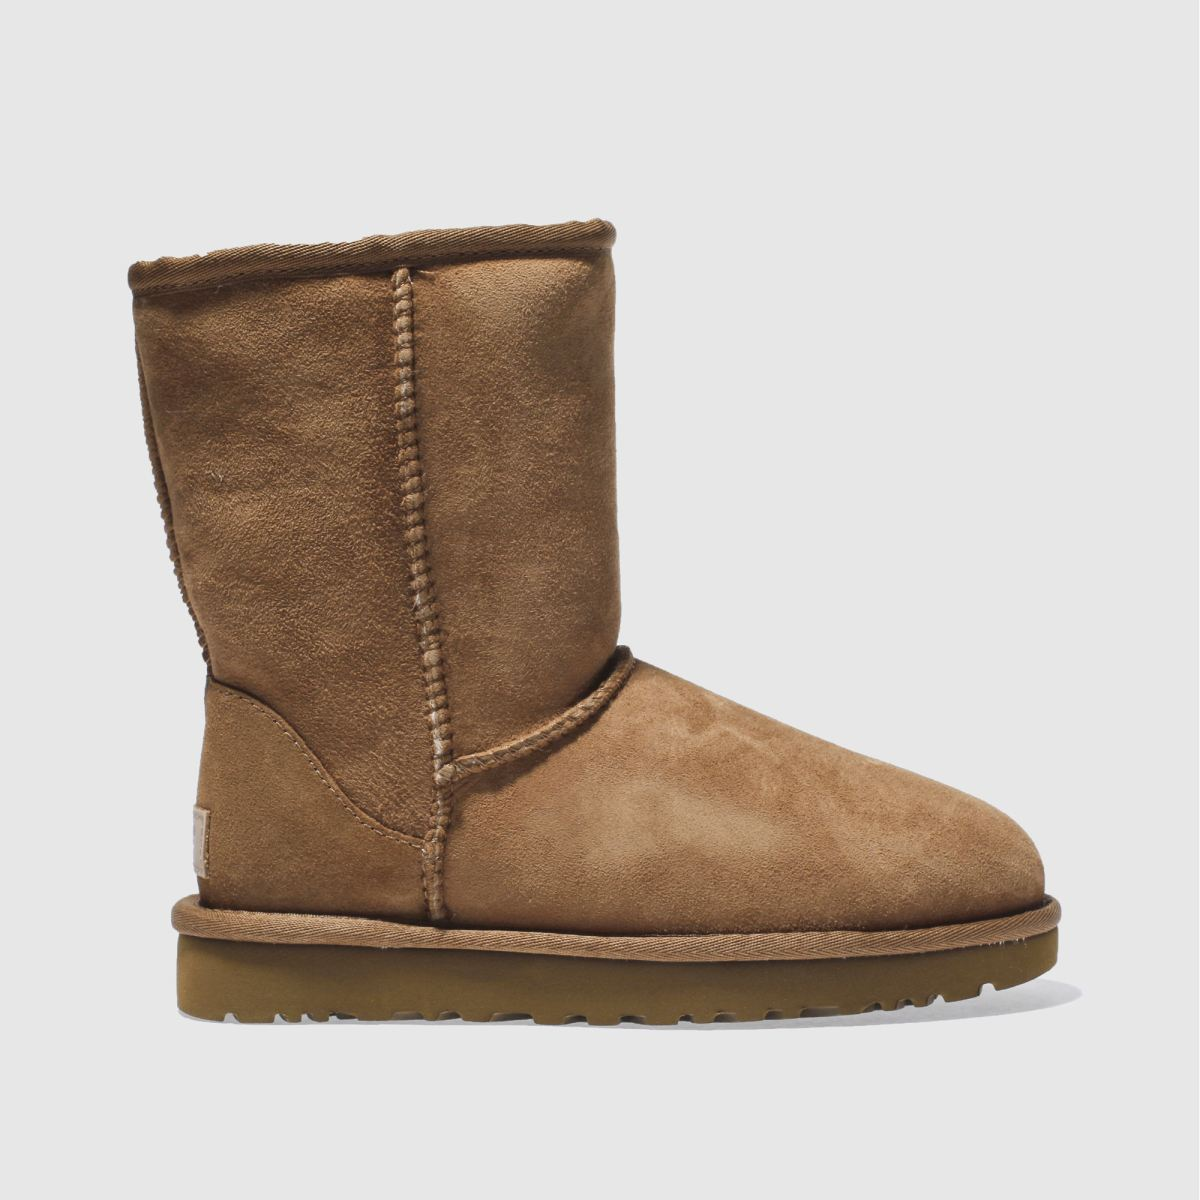 all ugg boots ugg boots for cheap where can i find ugg